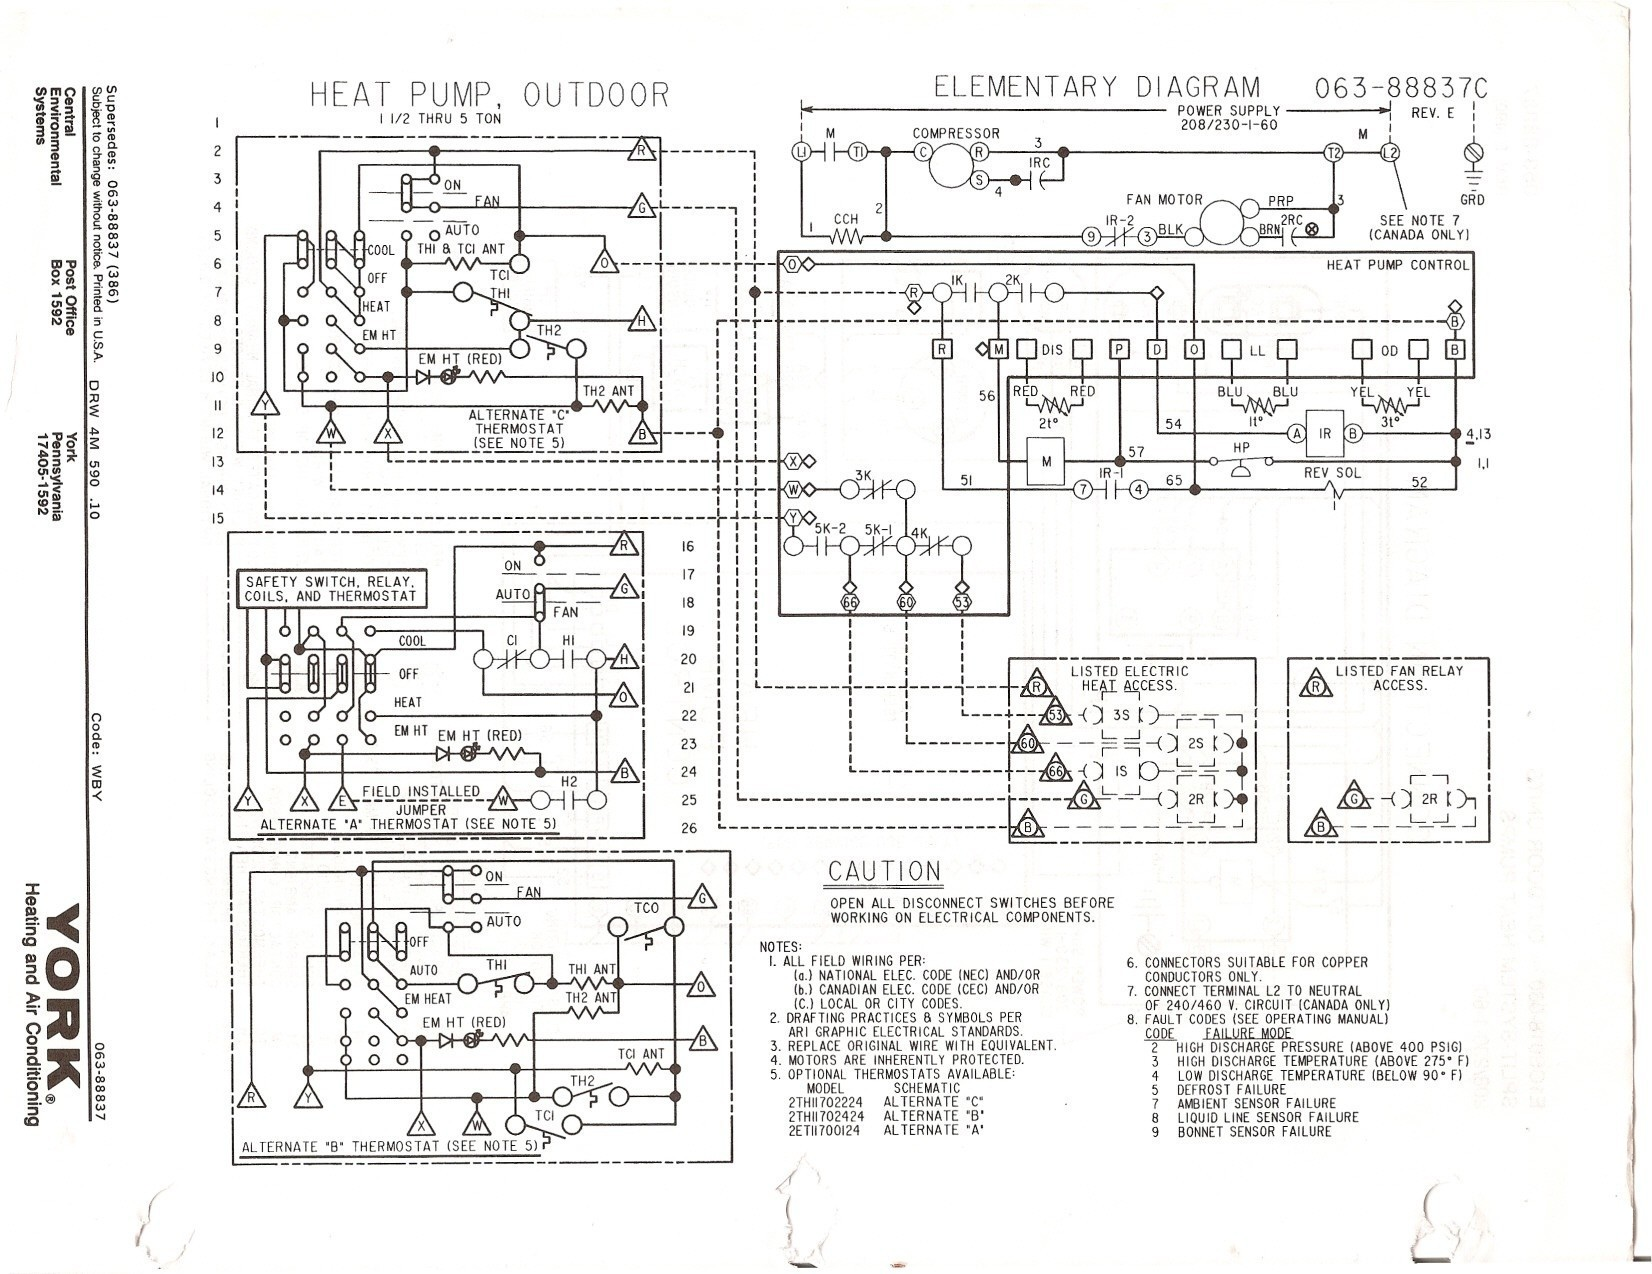 Omron G7l 2a Tubj Cb Wiring Diagram Perfect Colorful York Heat Pump Wiring Schematics Gallery Electrical